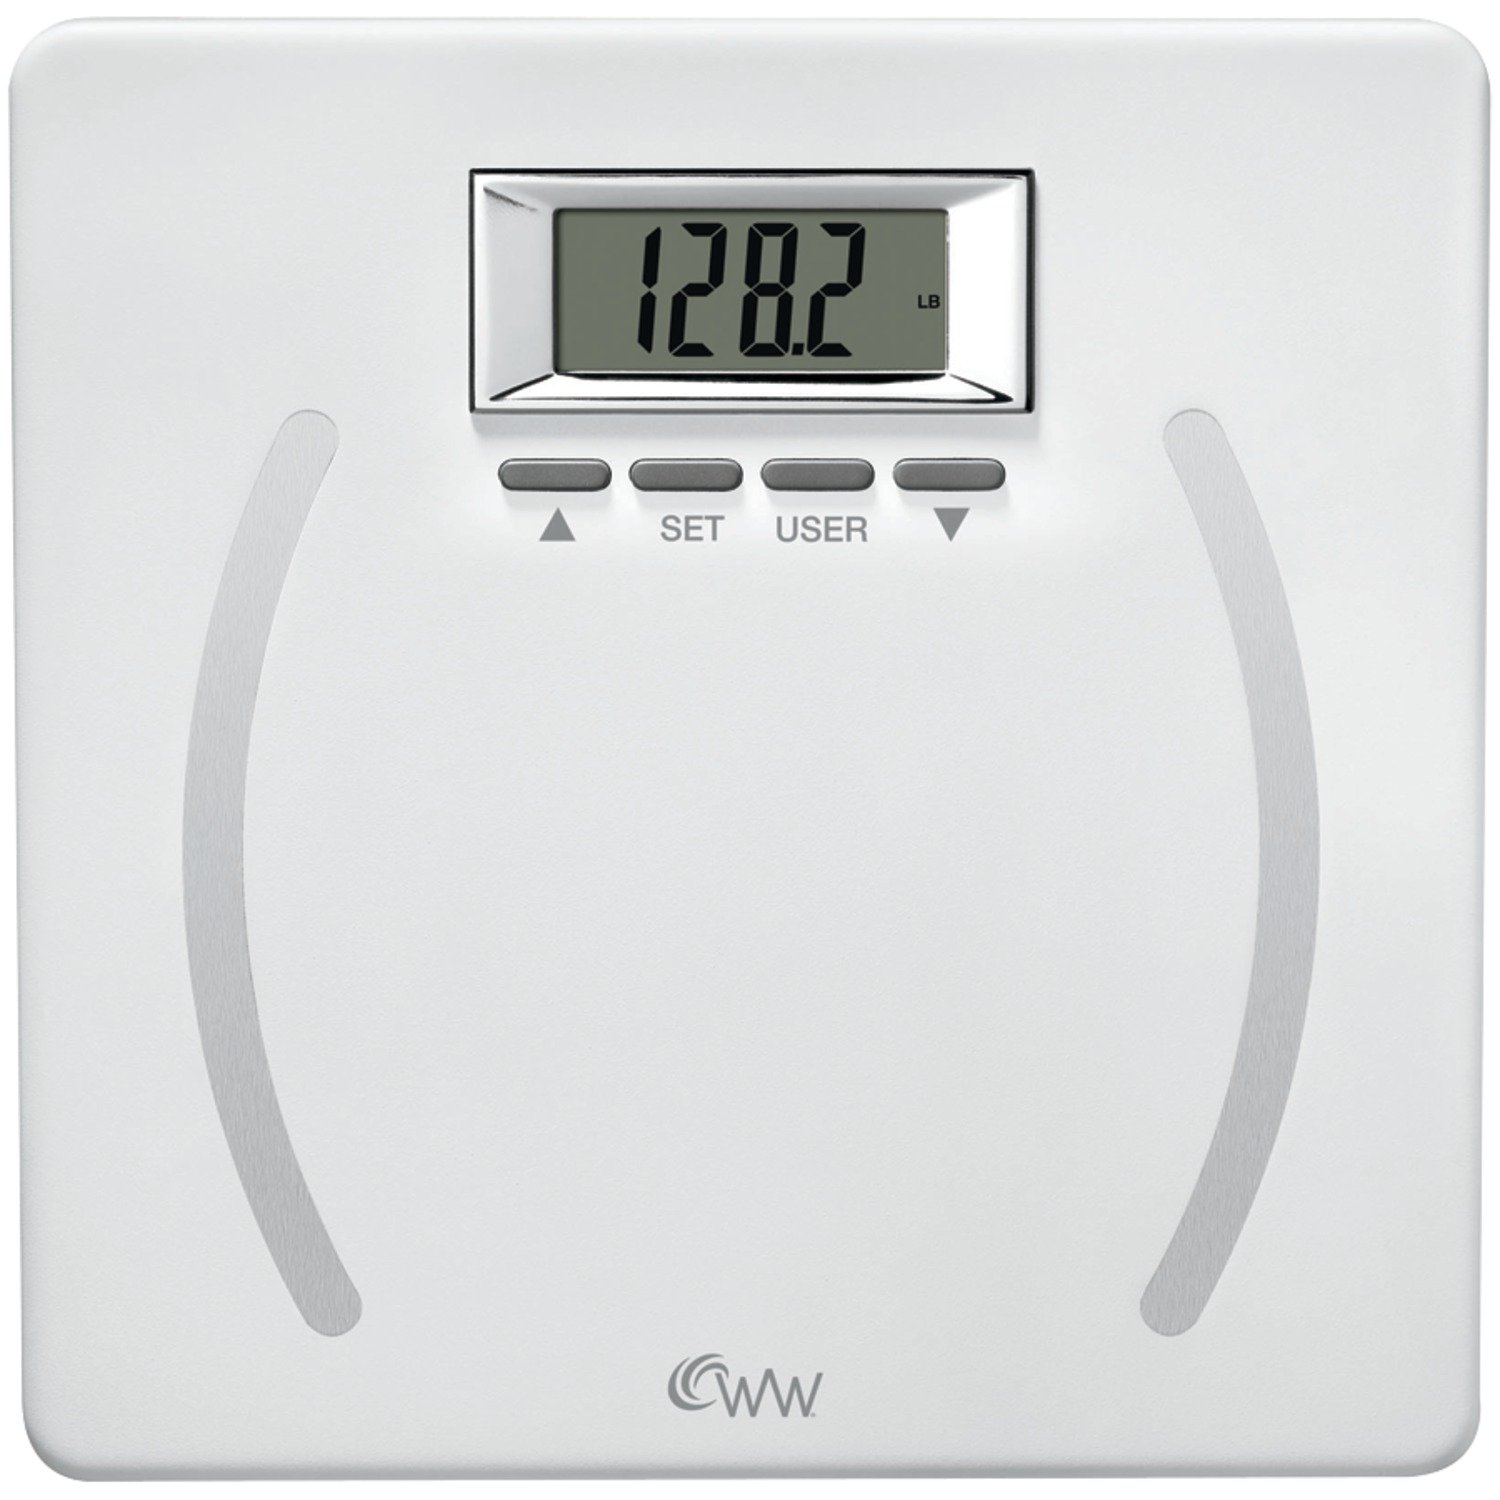 Weight Watchers by Conair Body Analysis Precision Bathroom Scale; Measures Body Fat, Body Water, BMI, Bone Mass; 350 lb. capacity; 4-user Memory Bath Scale; White with Polished Chrome Bezel